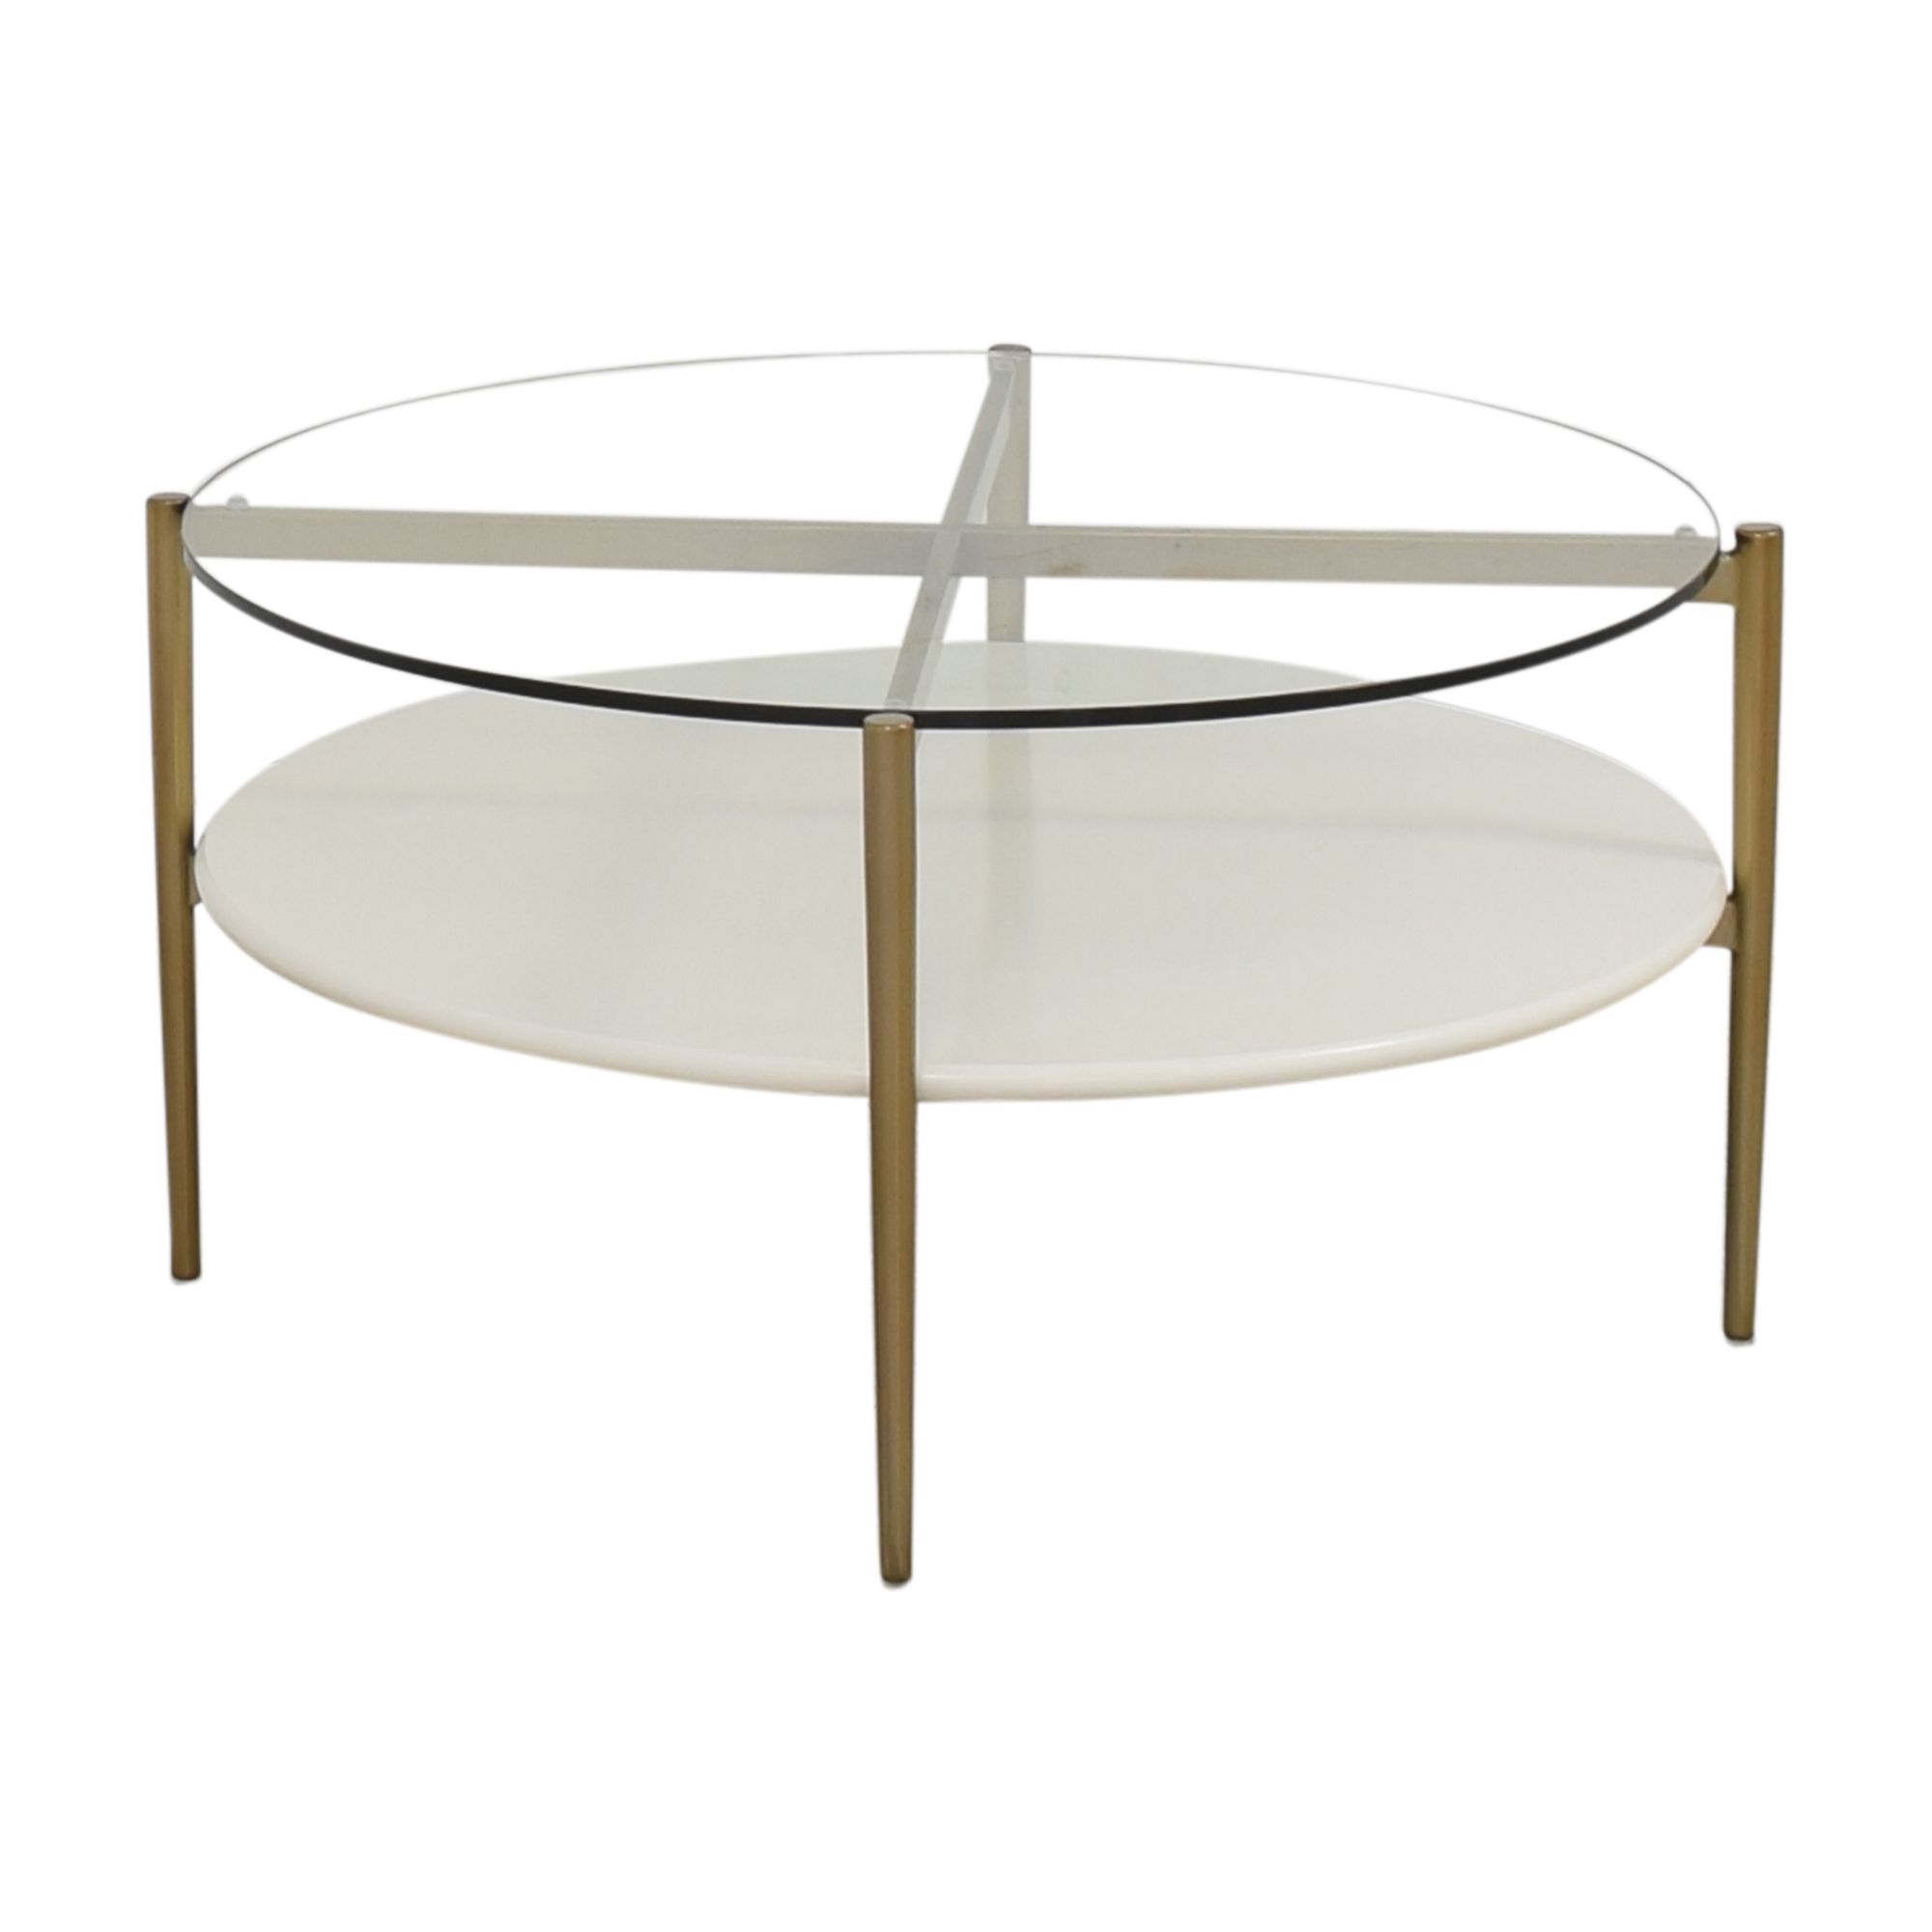 West Elm West Elm Coffee Table with Shelf and Transparent Surface ma